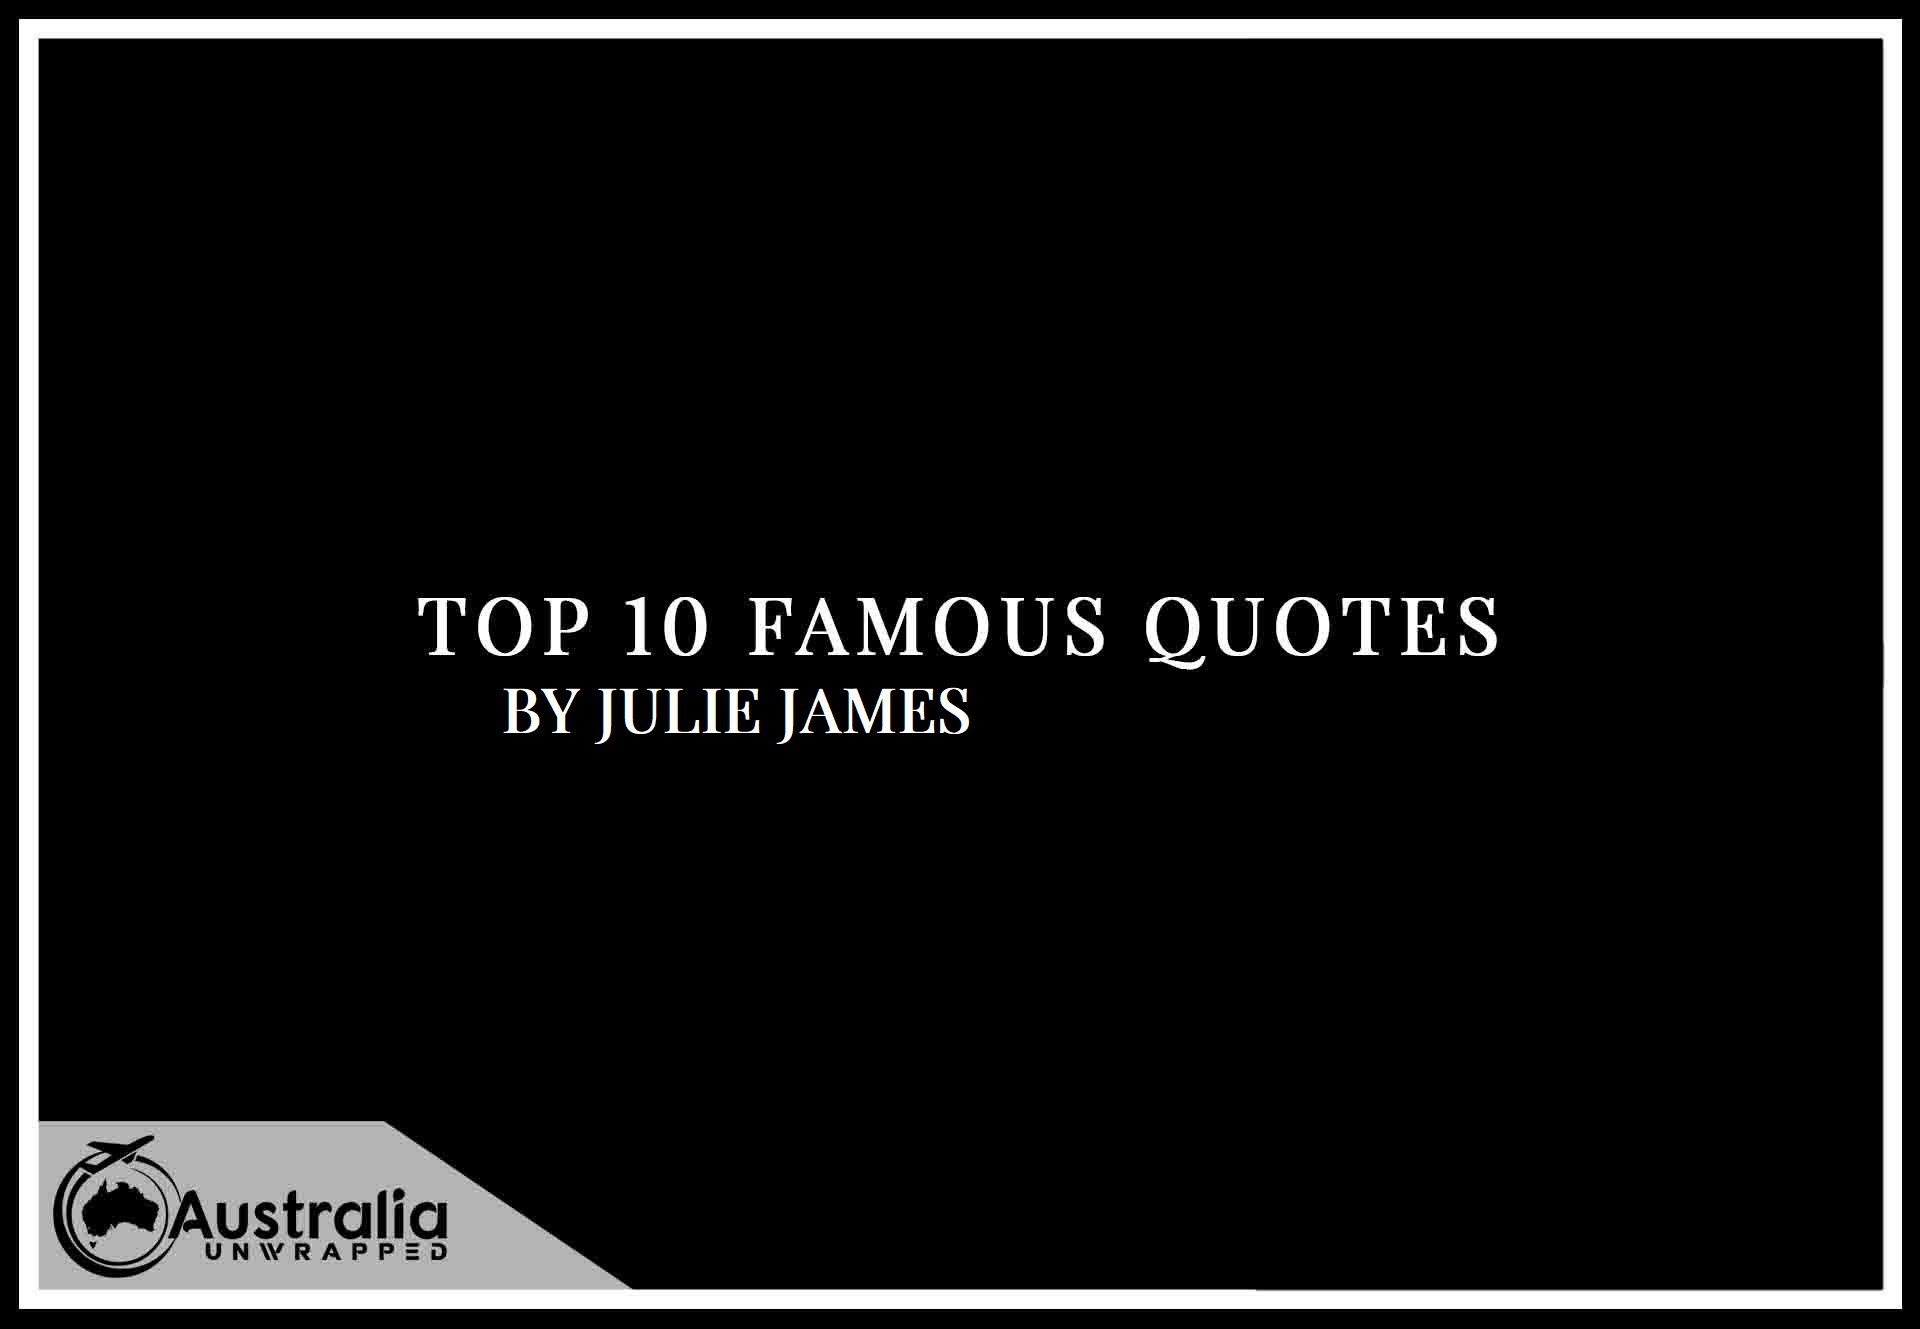 Top 10 Famous Quotes by Author Julie James